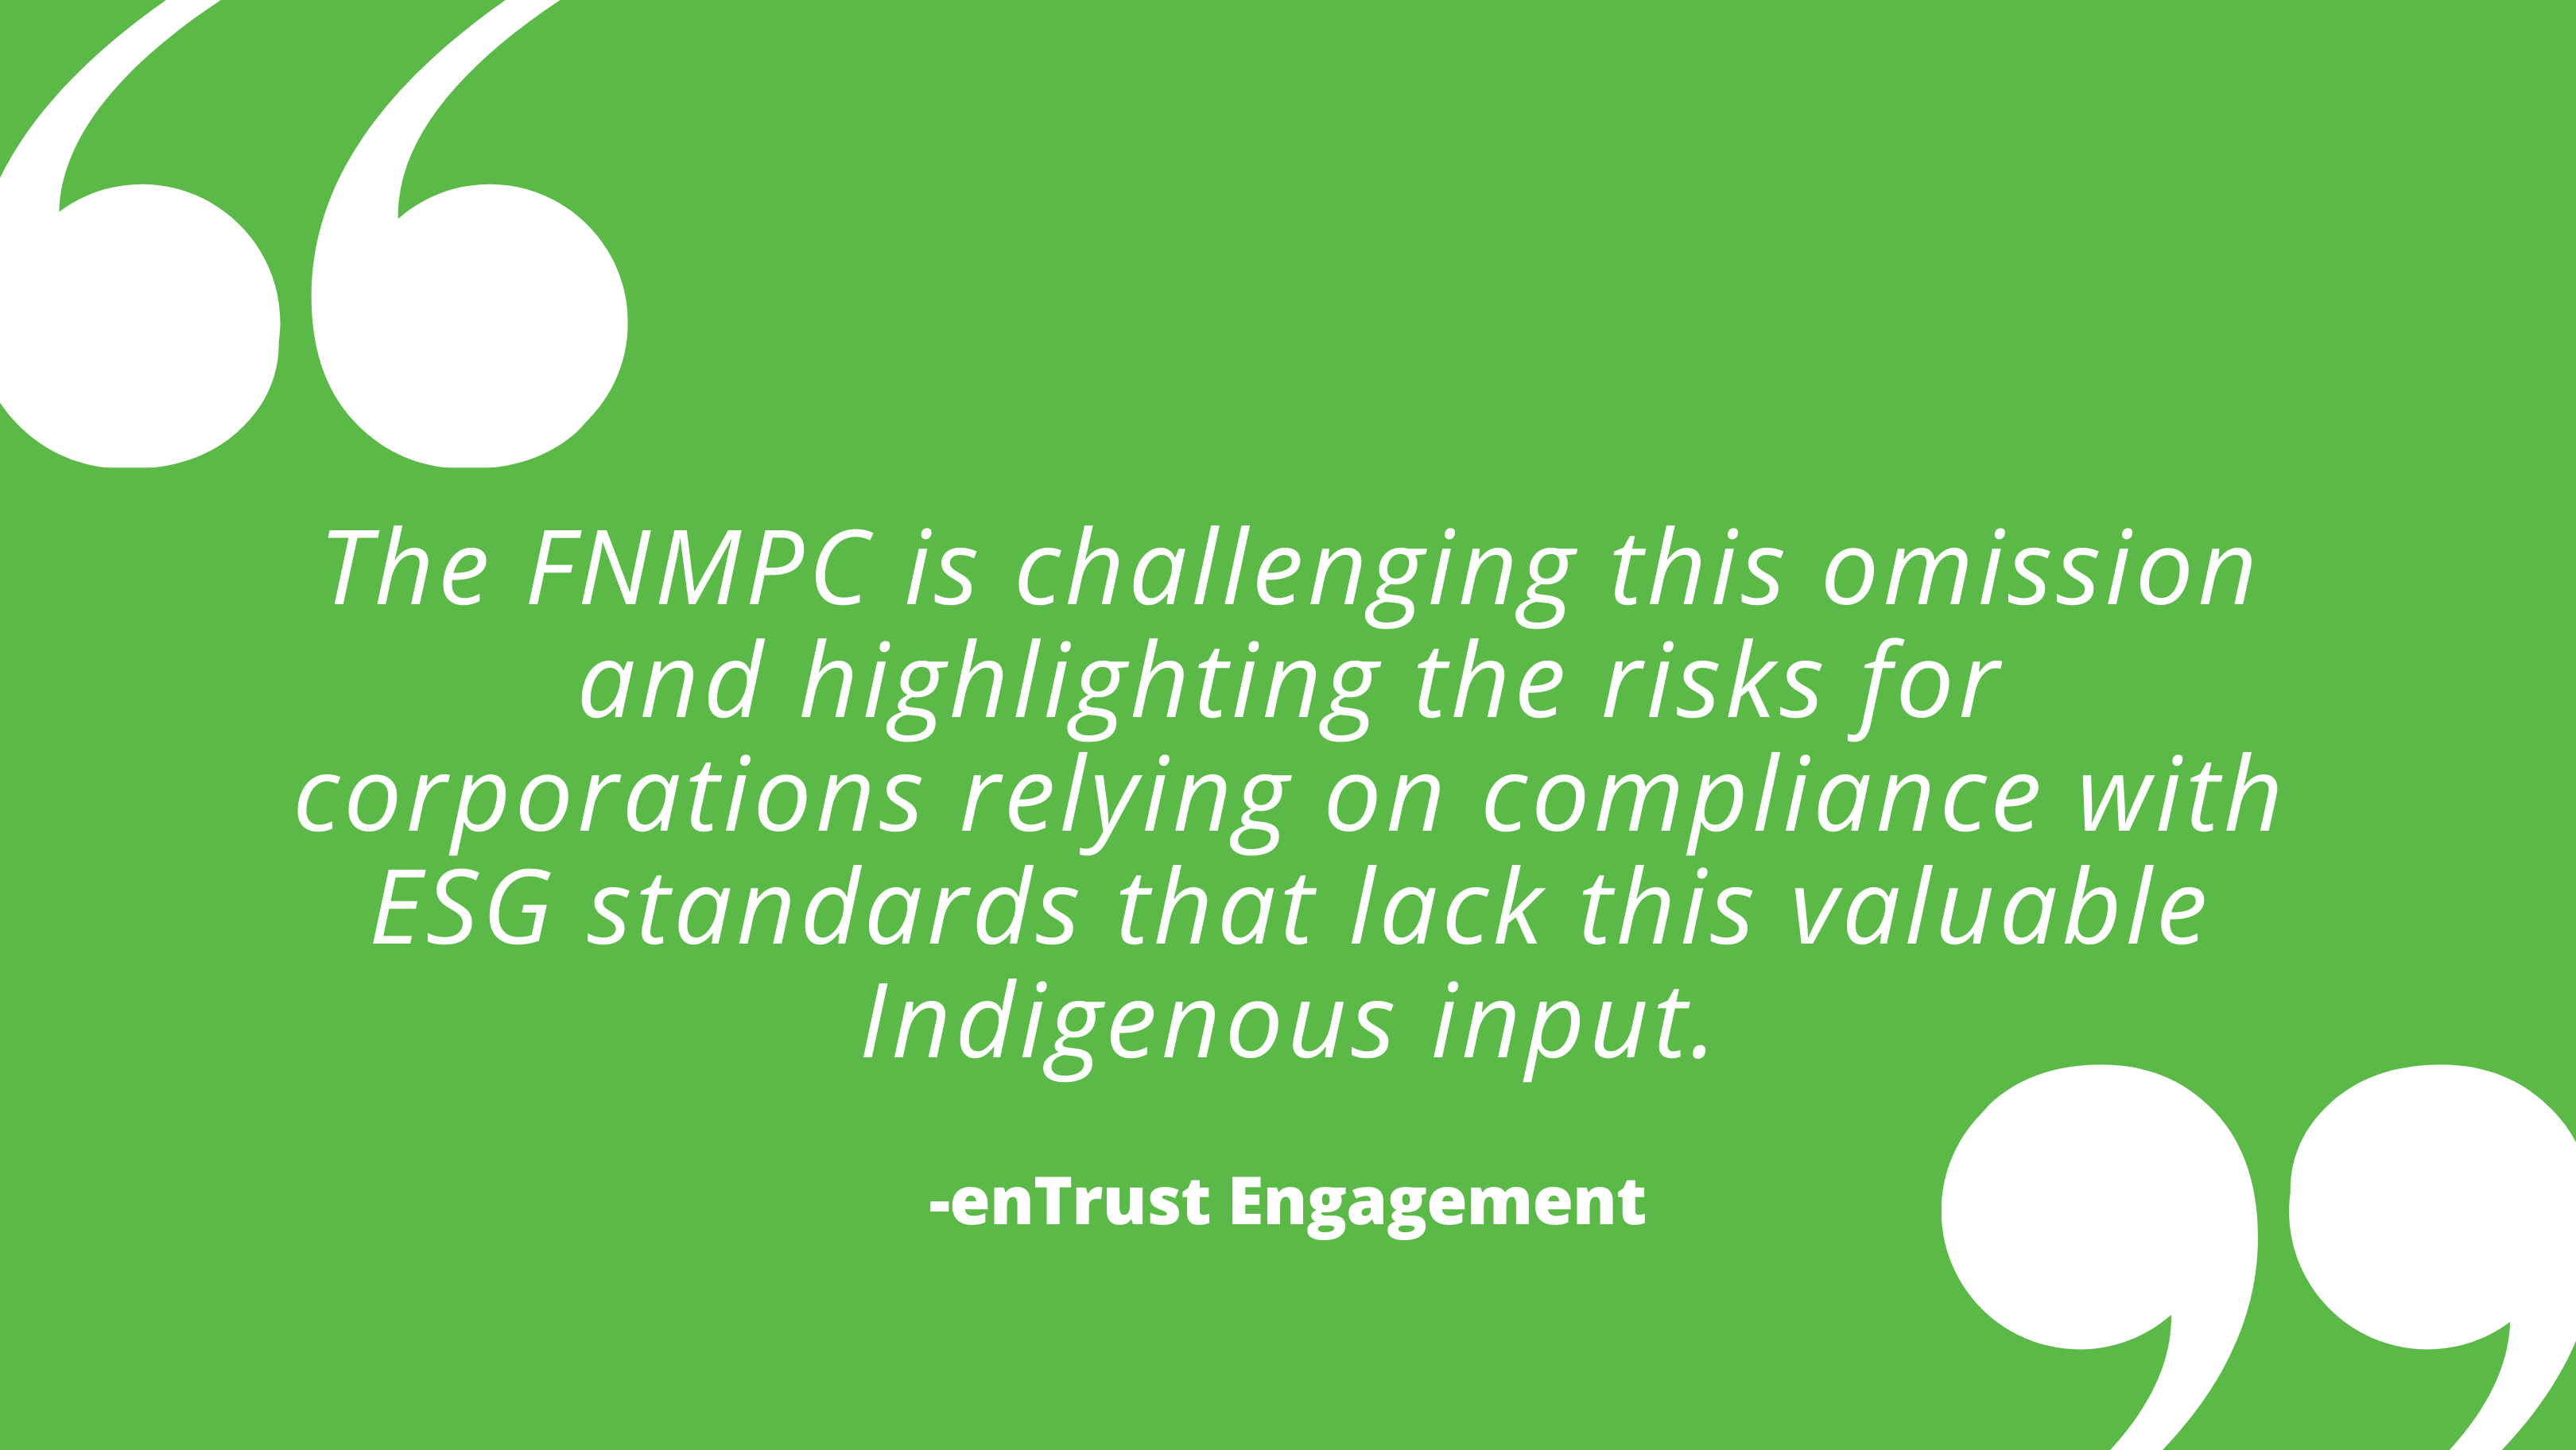 The FNMPC is challenging this omission and highlighting the risks for corporations relying on compliance with ESG standards that lack this valuable Indigenous input.